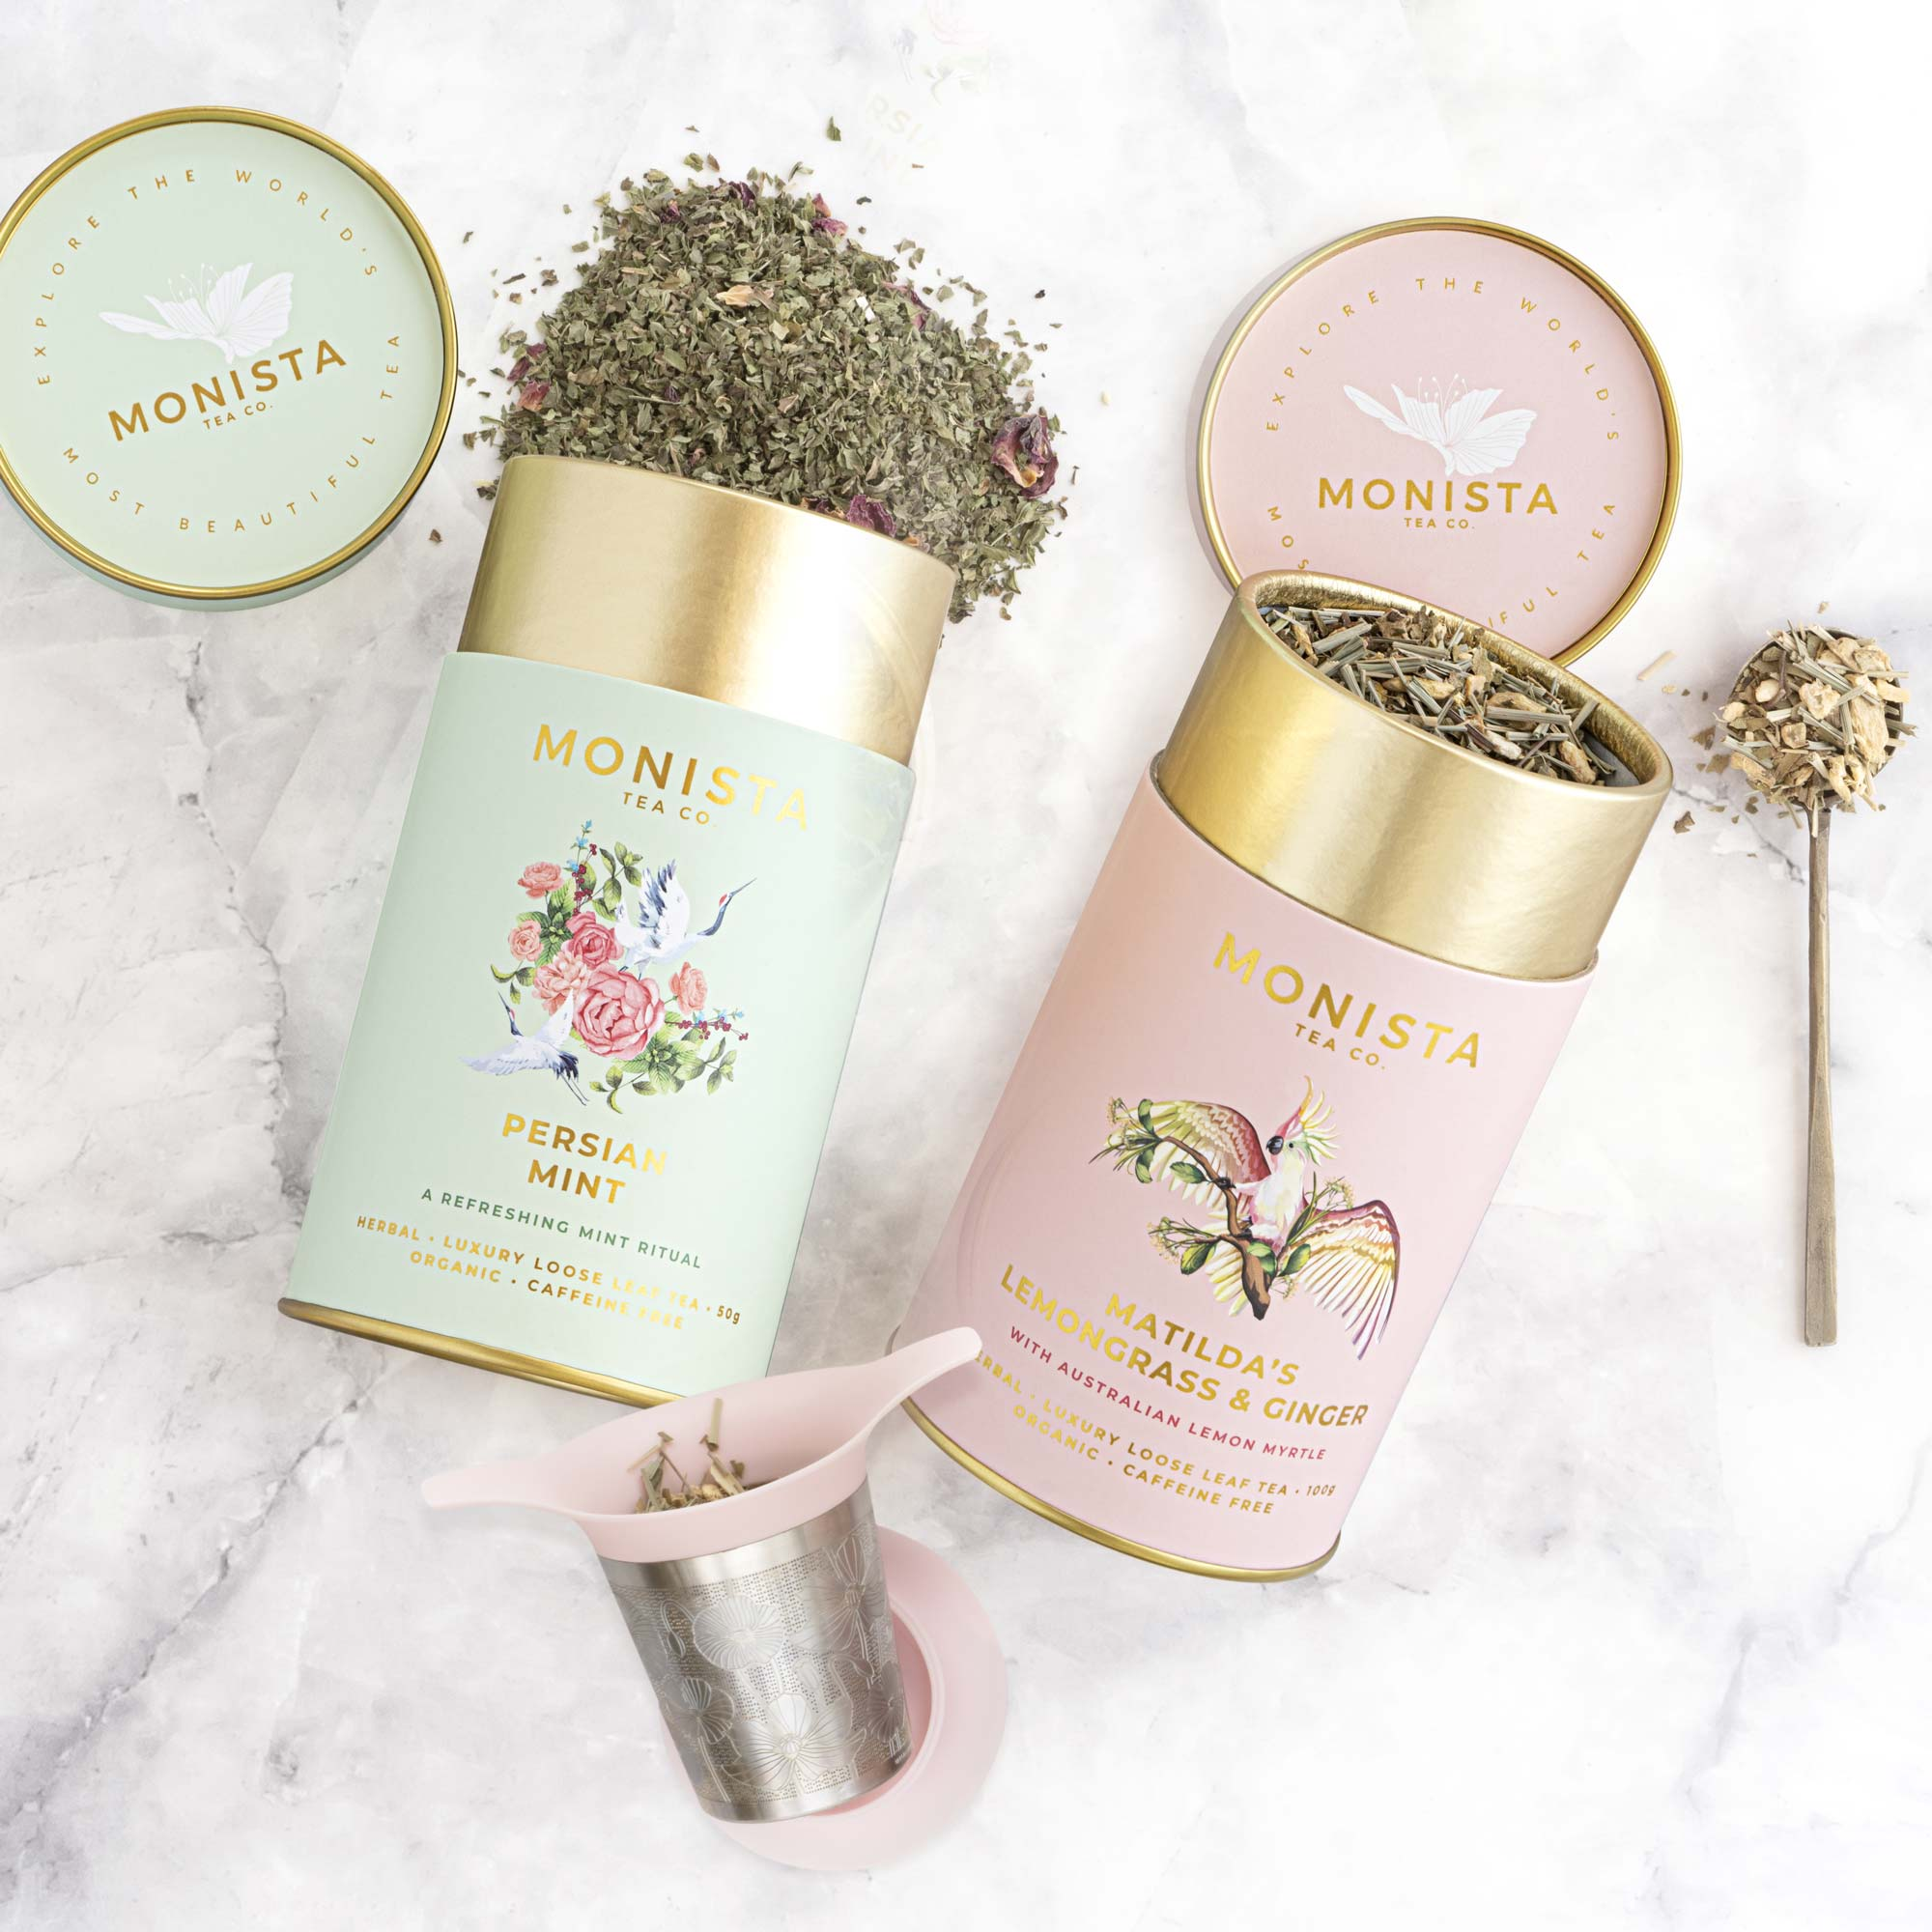 persian mint canister and lemongrass and ginger canister